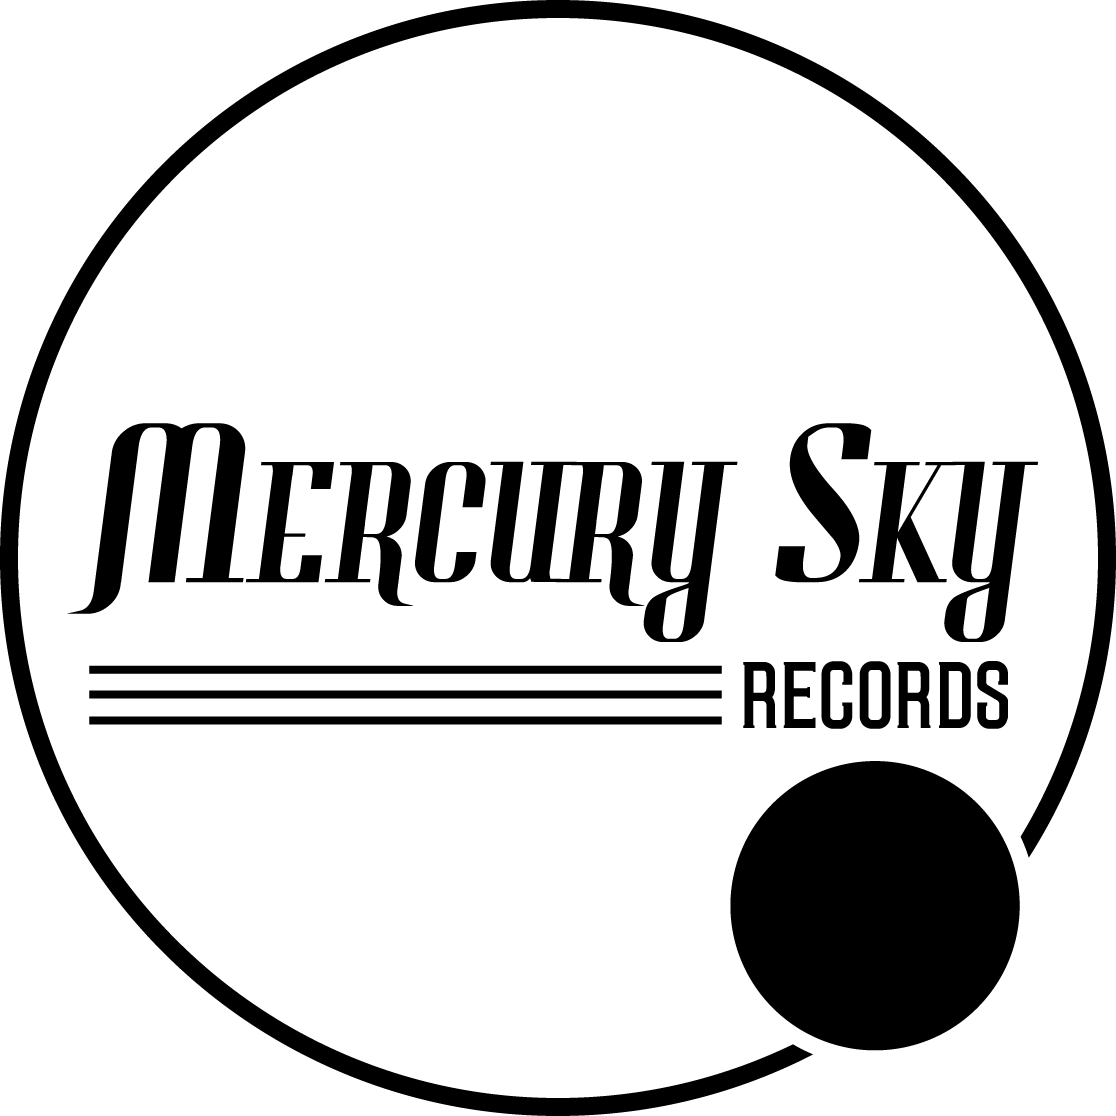 Mercury Sky Records